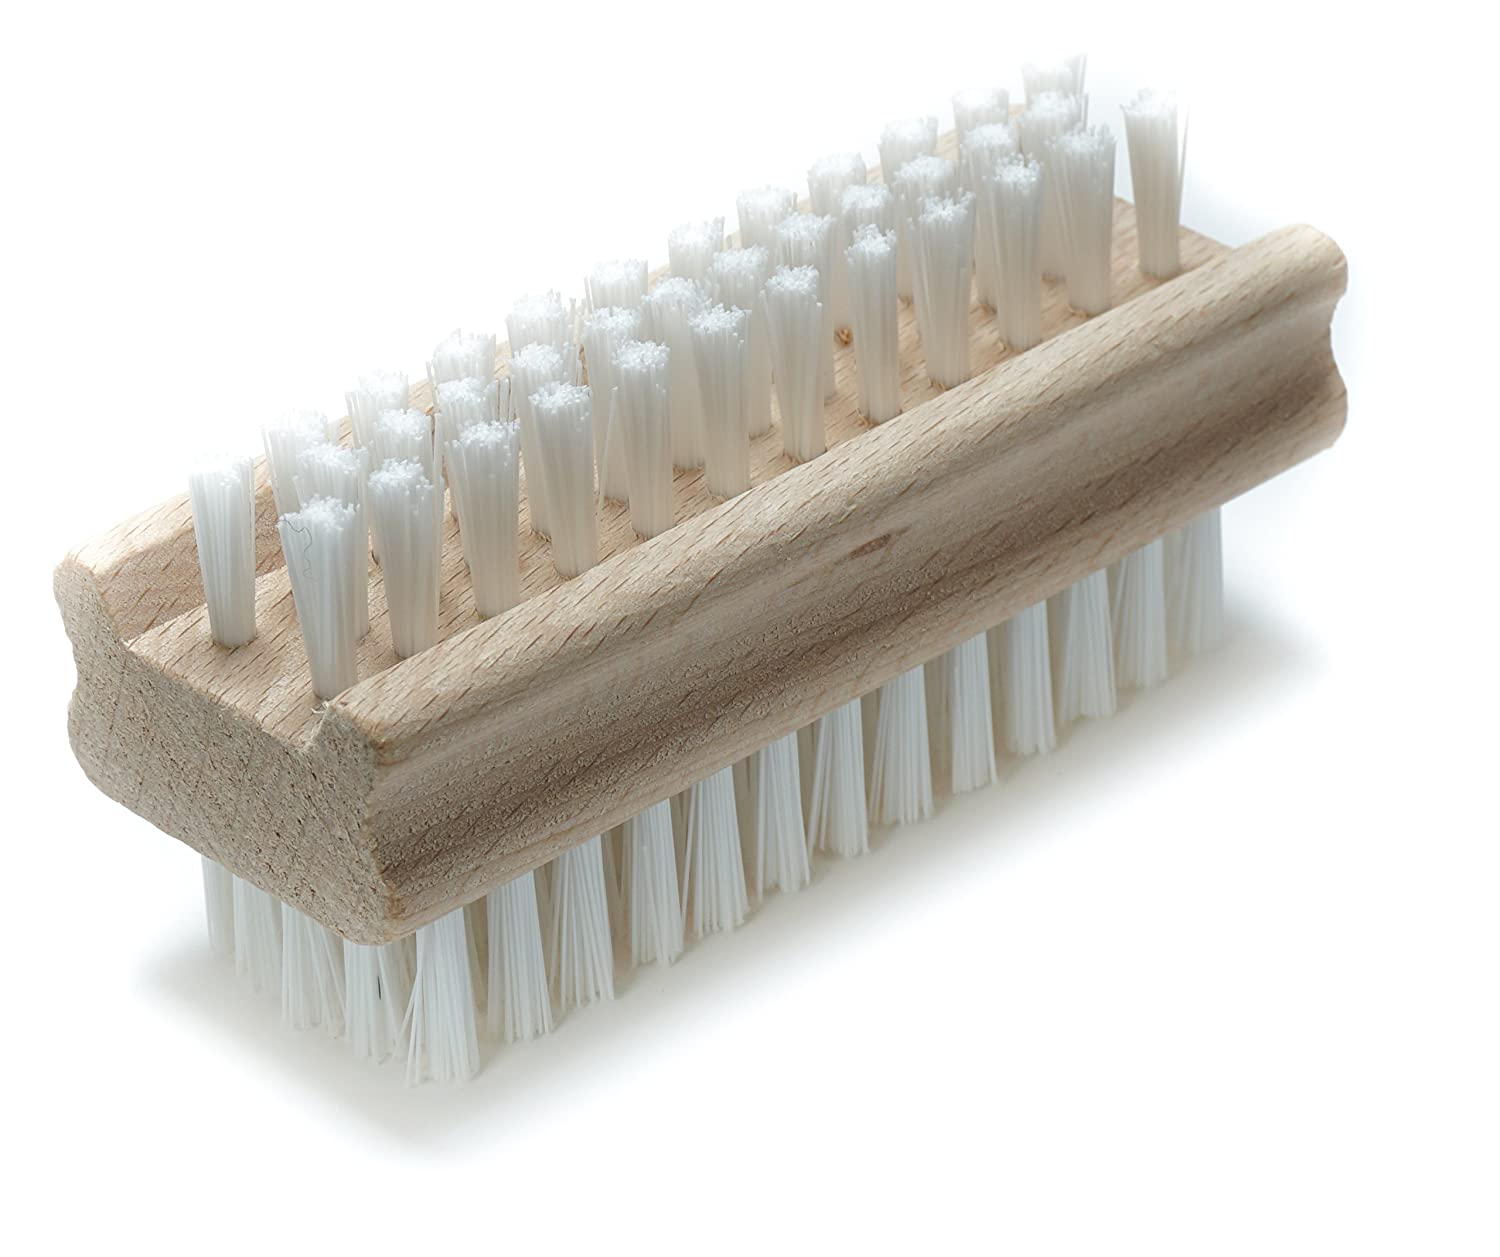 Konex Non-Slip Wooden Two-sided Hand and Nail Brush 84521